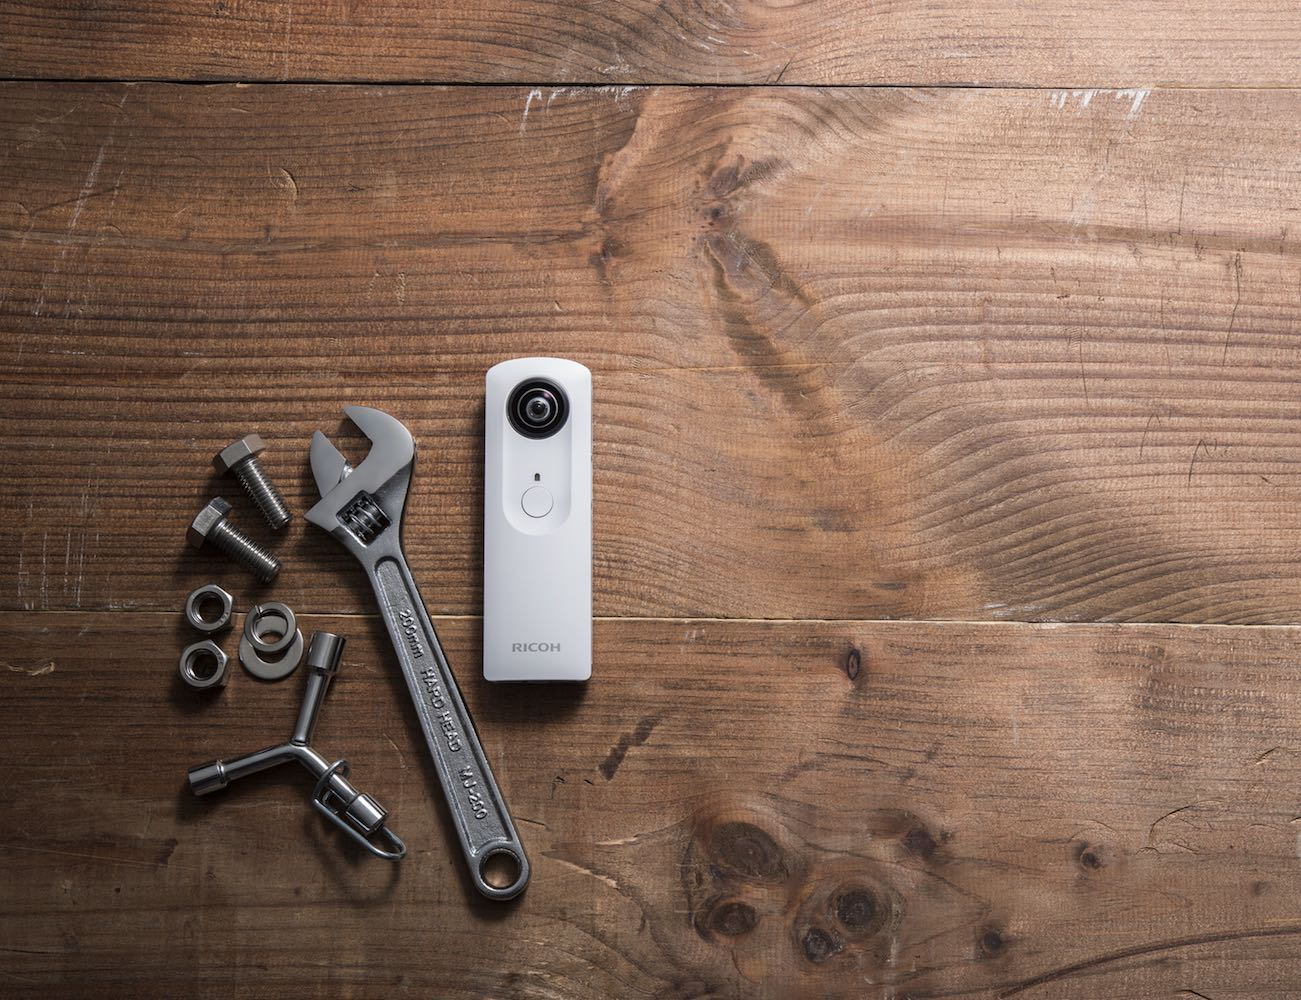 Ricoh Theta S – 360-Degree Spherical Digital Camera